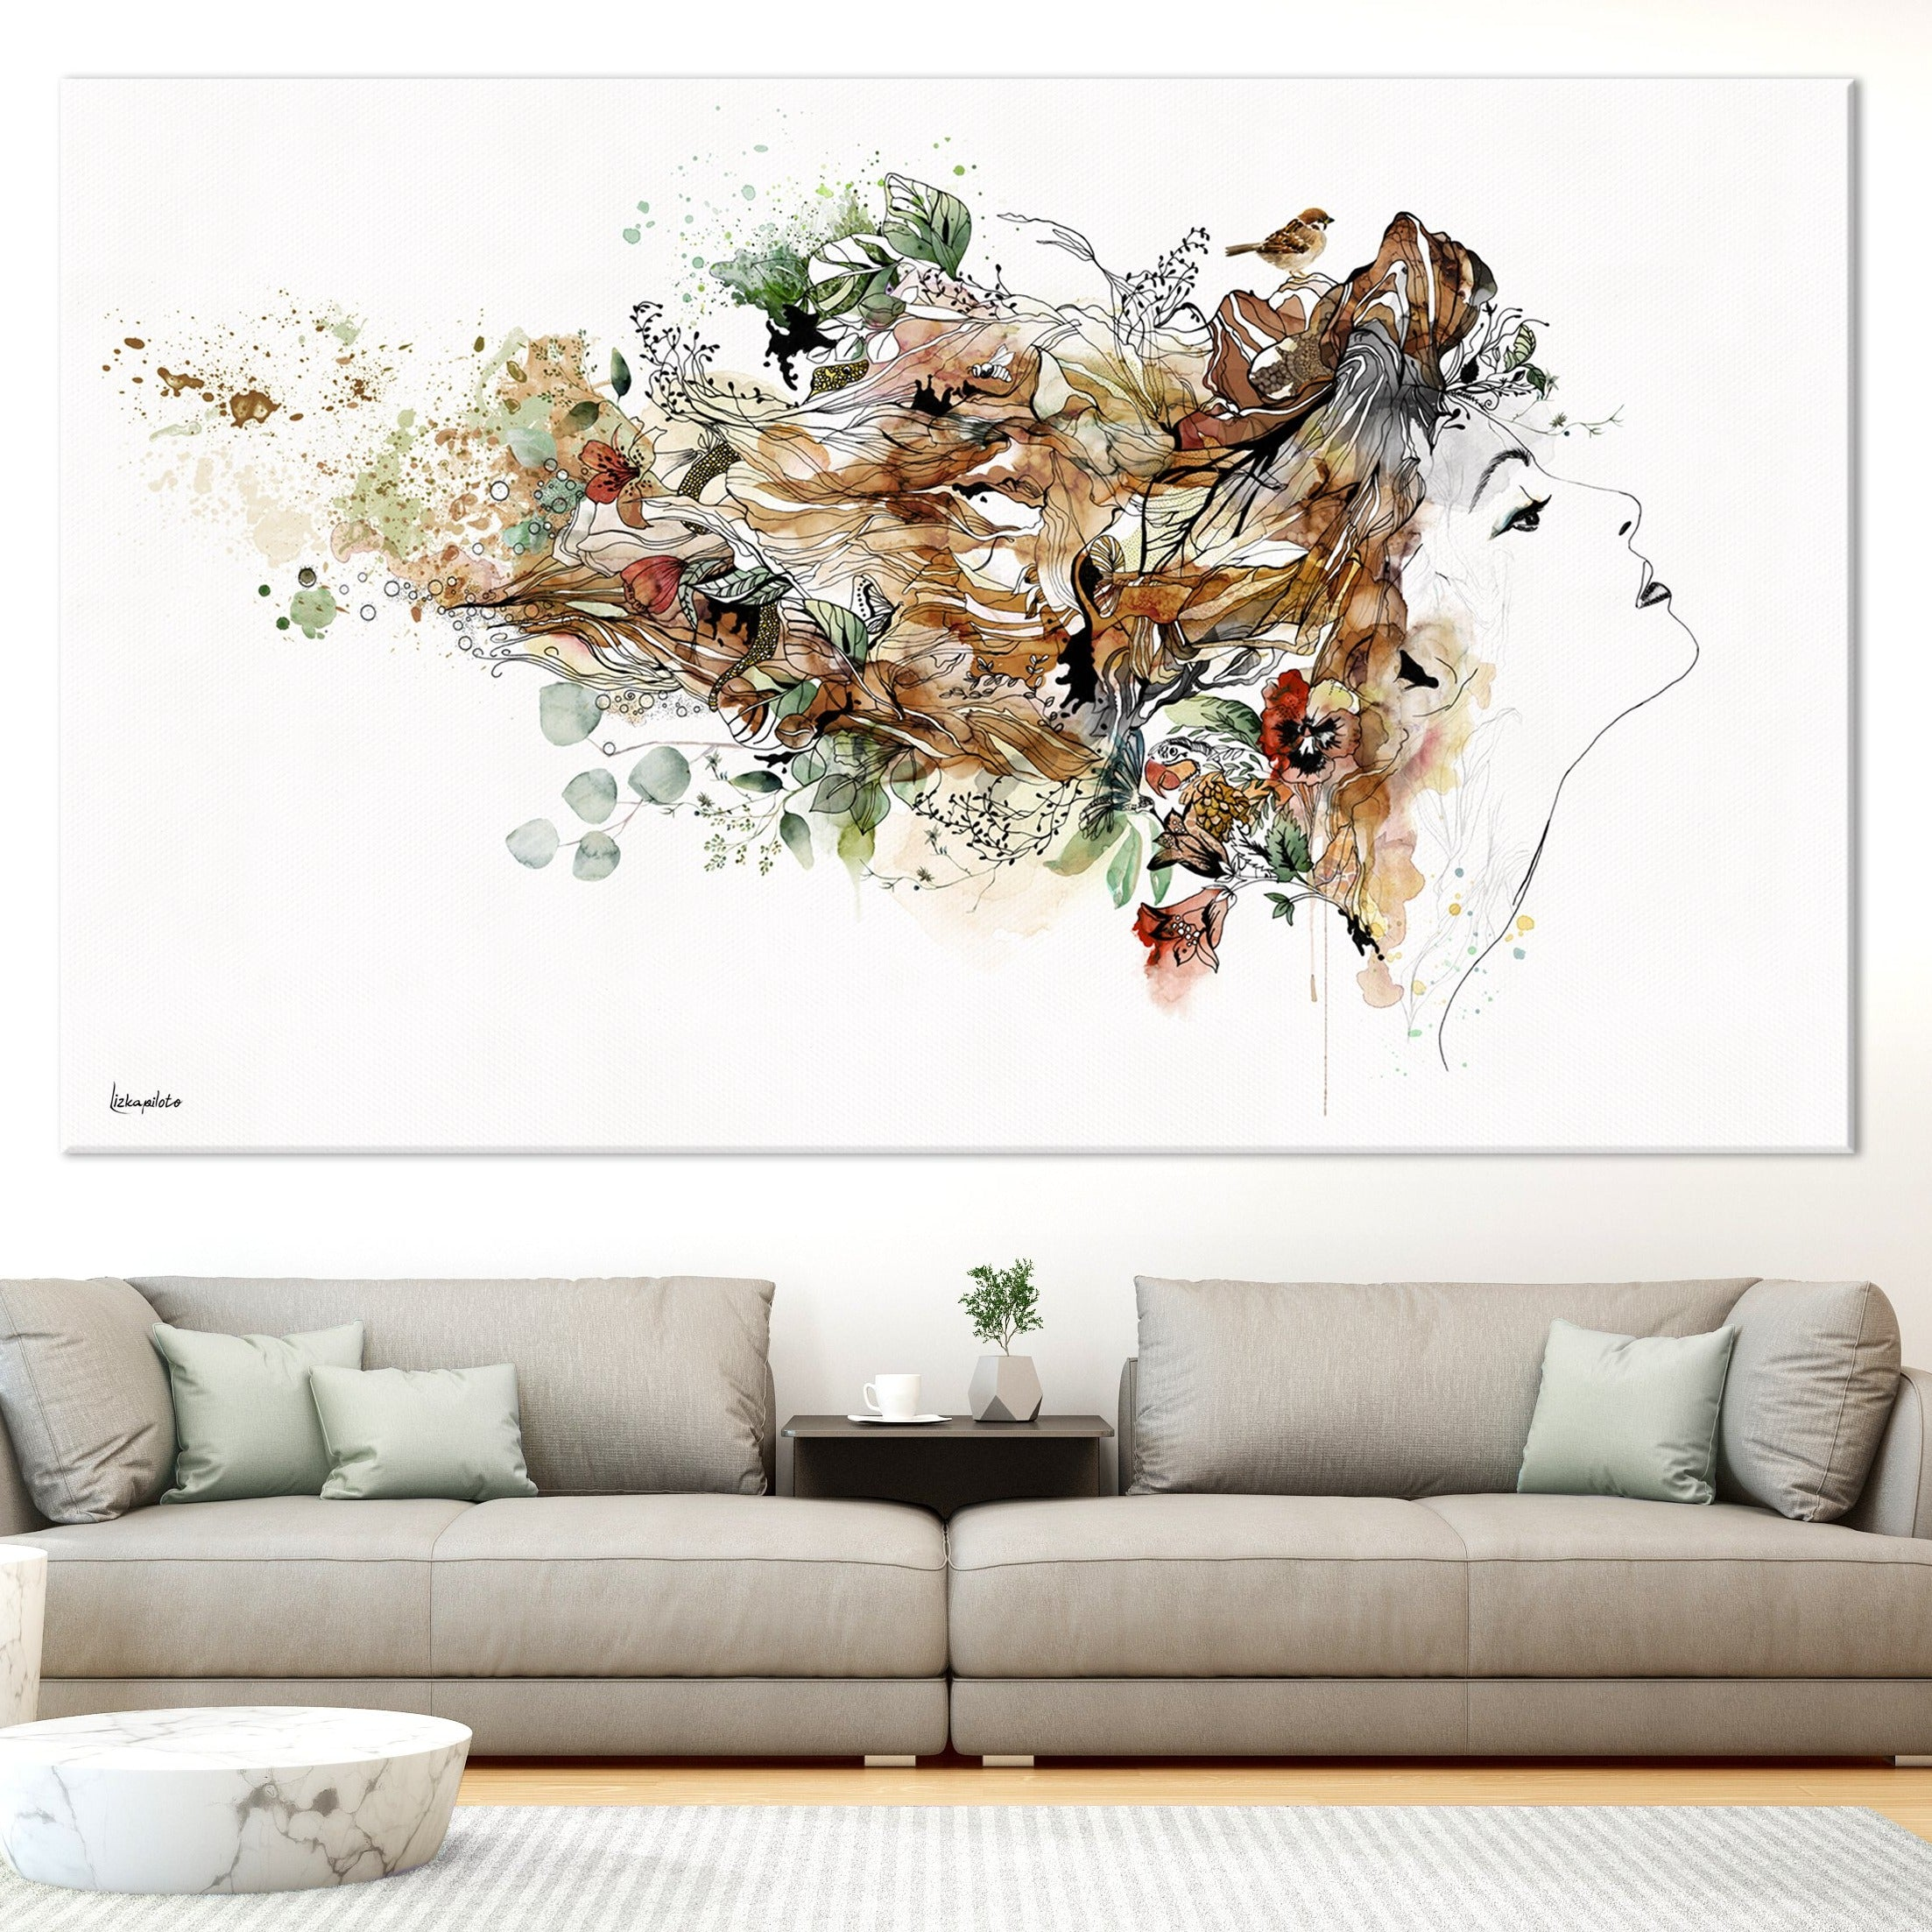 large wall art of woman colorful painting